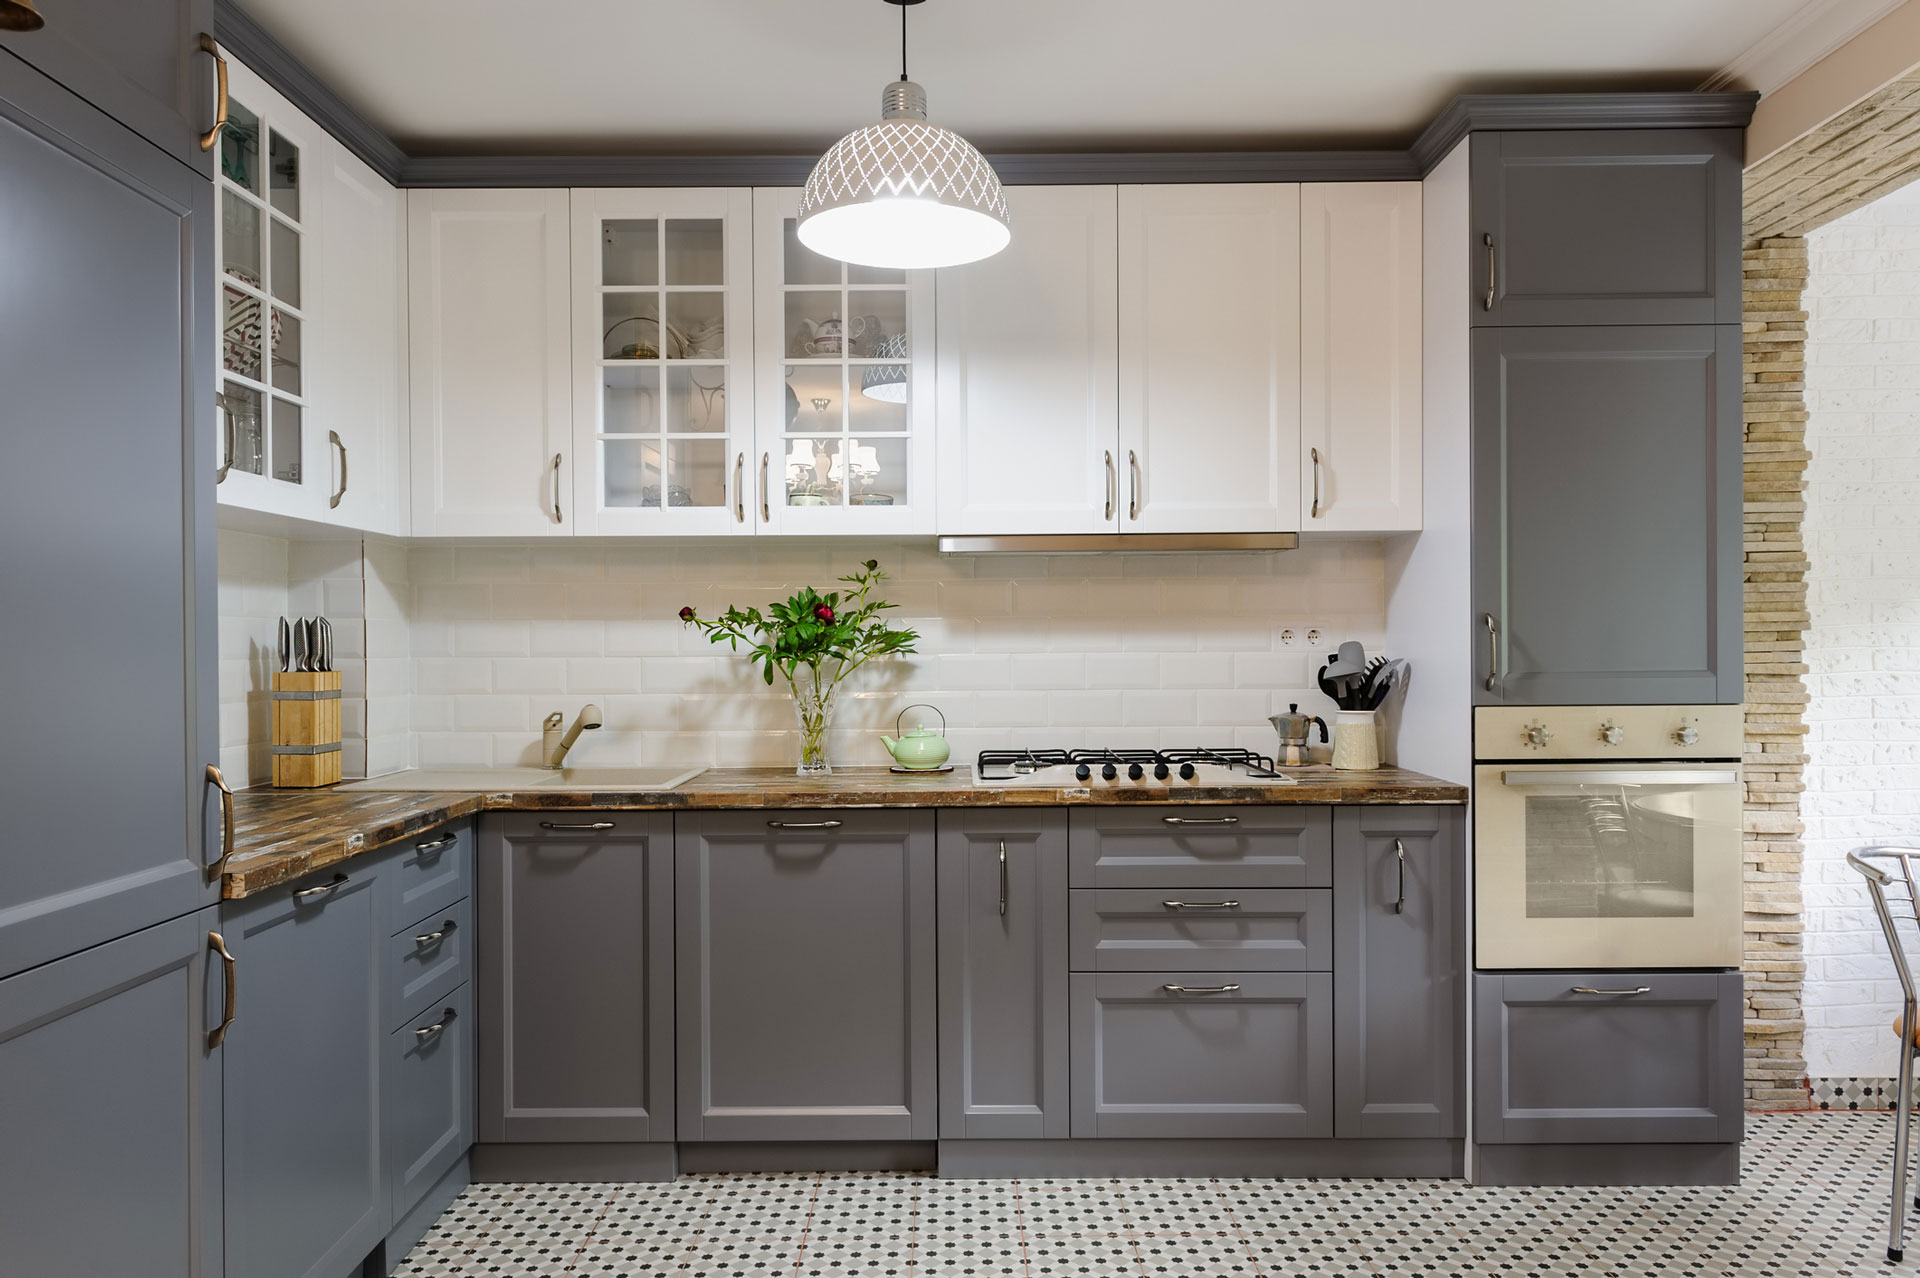 kitchen-cabinetry-feature